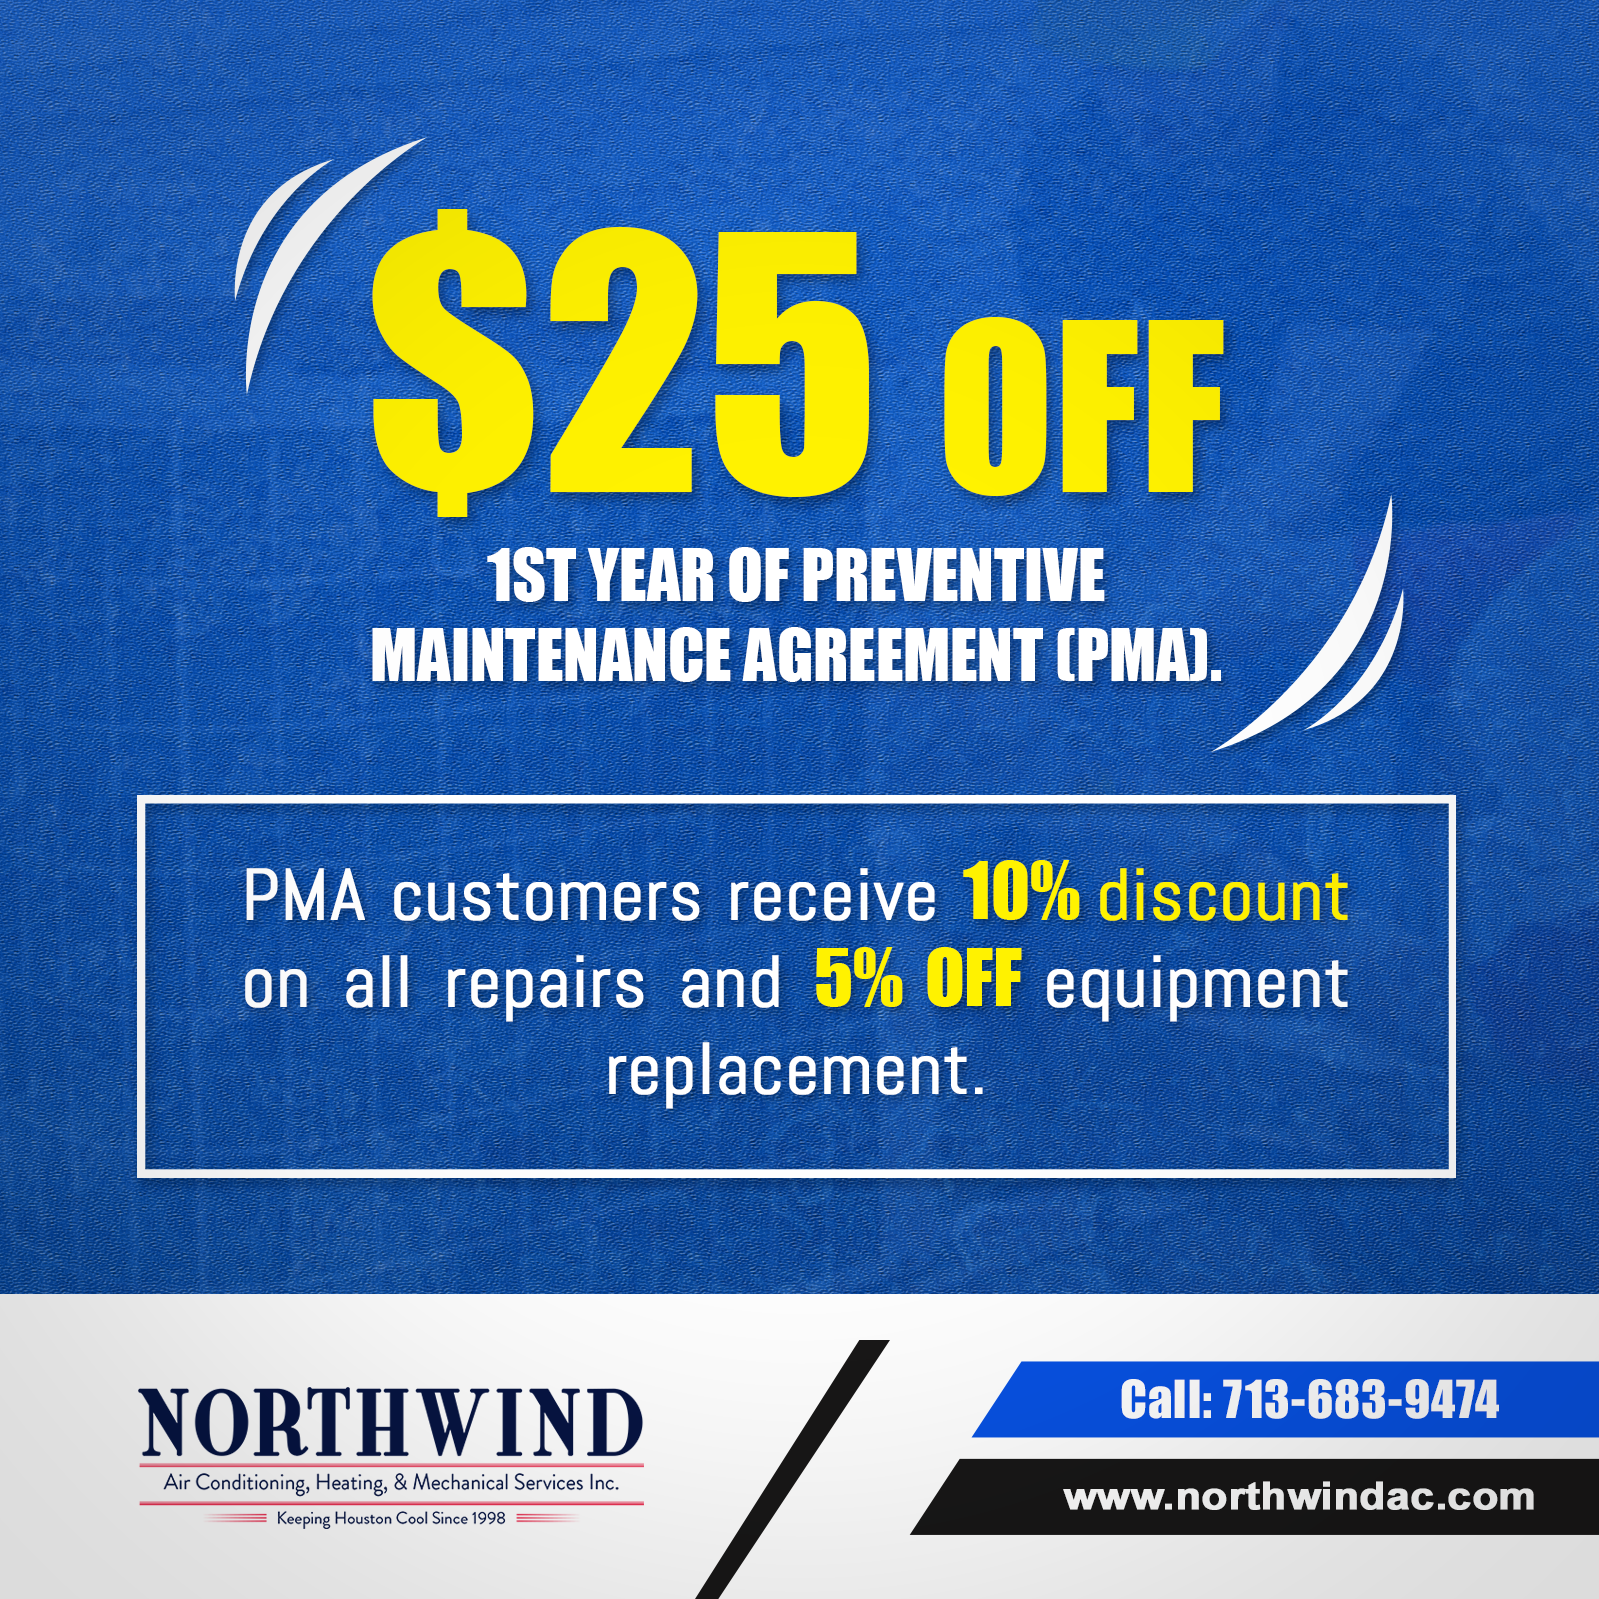 Northwind Air Conditioning, Heating & Mechanical Services image 7